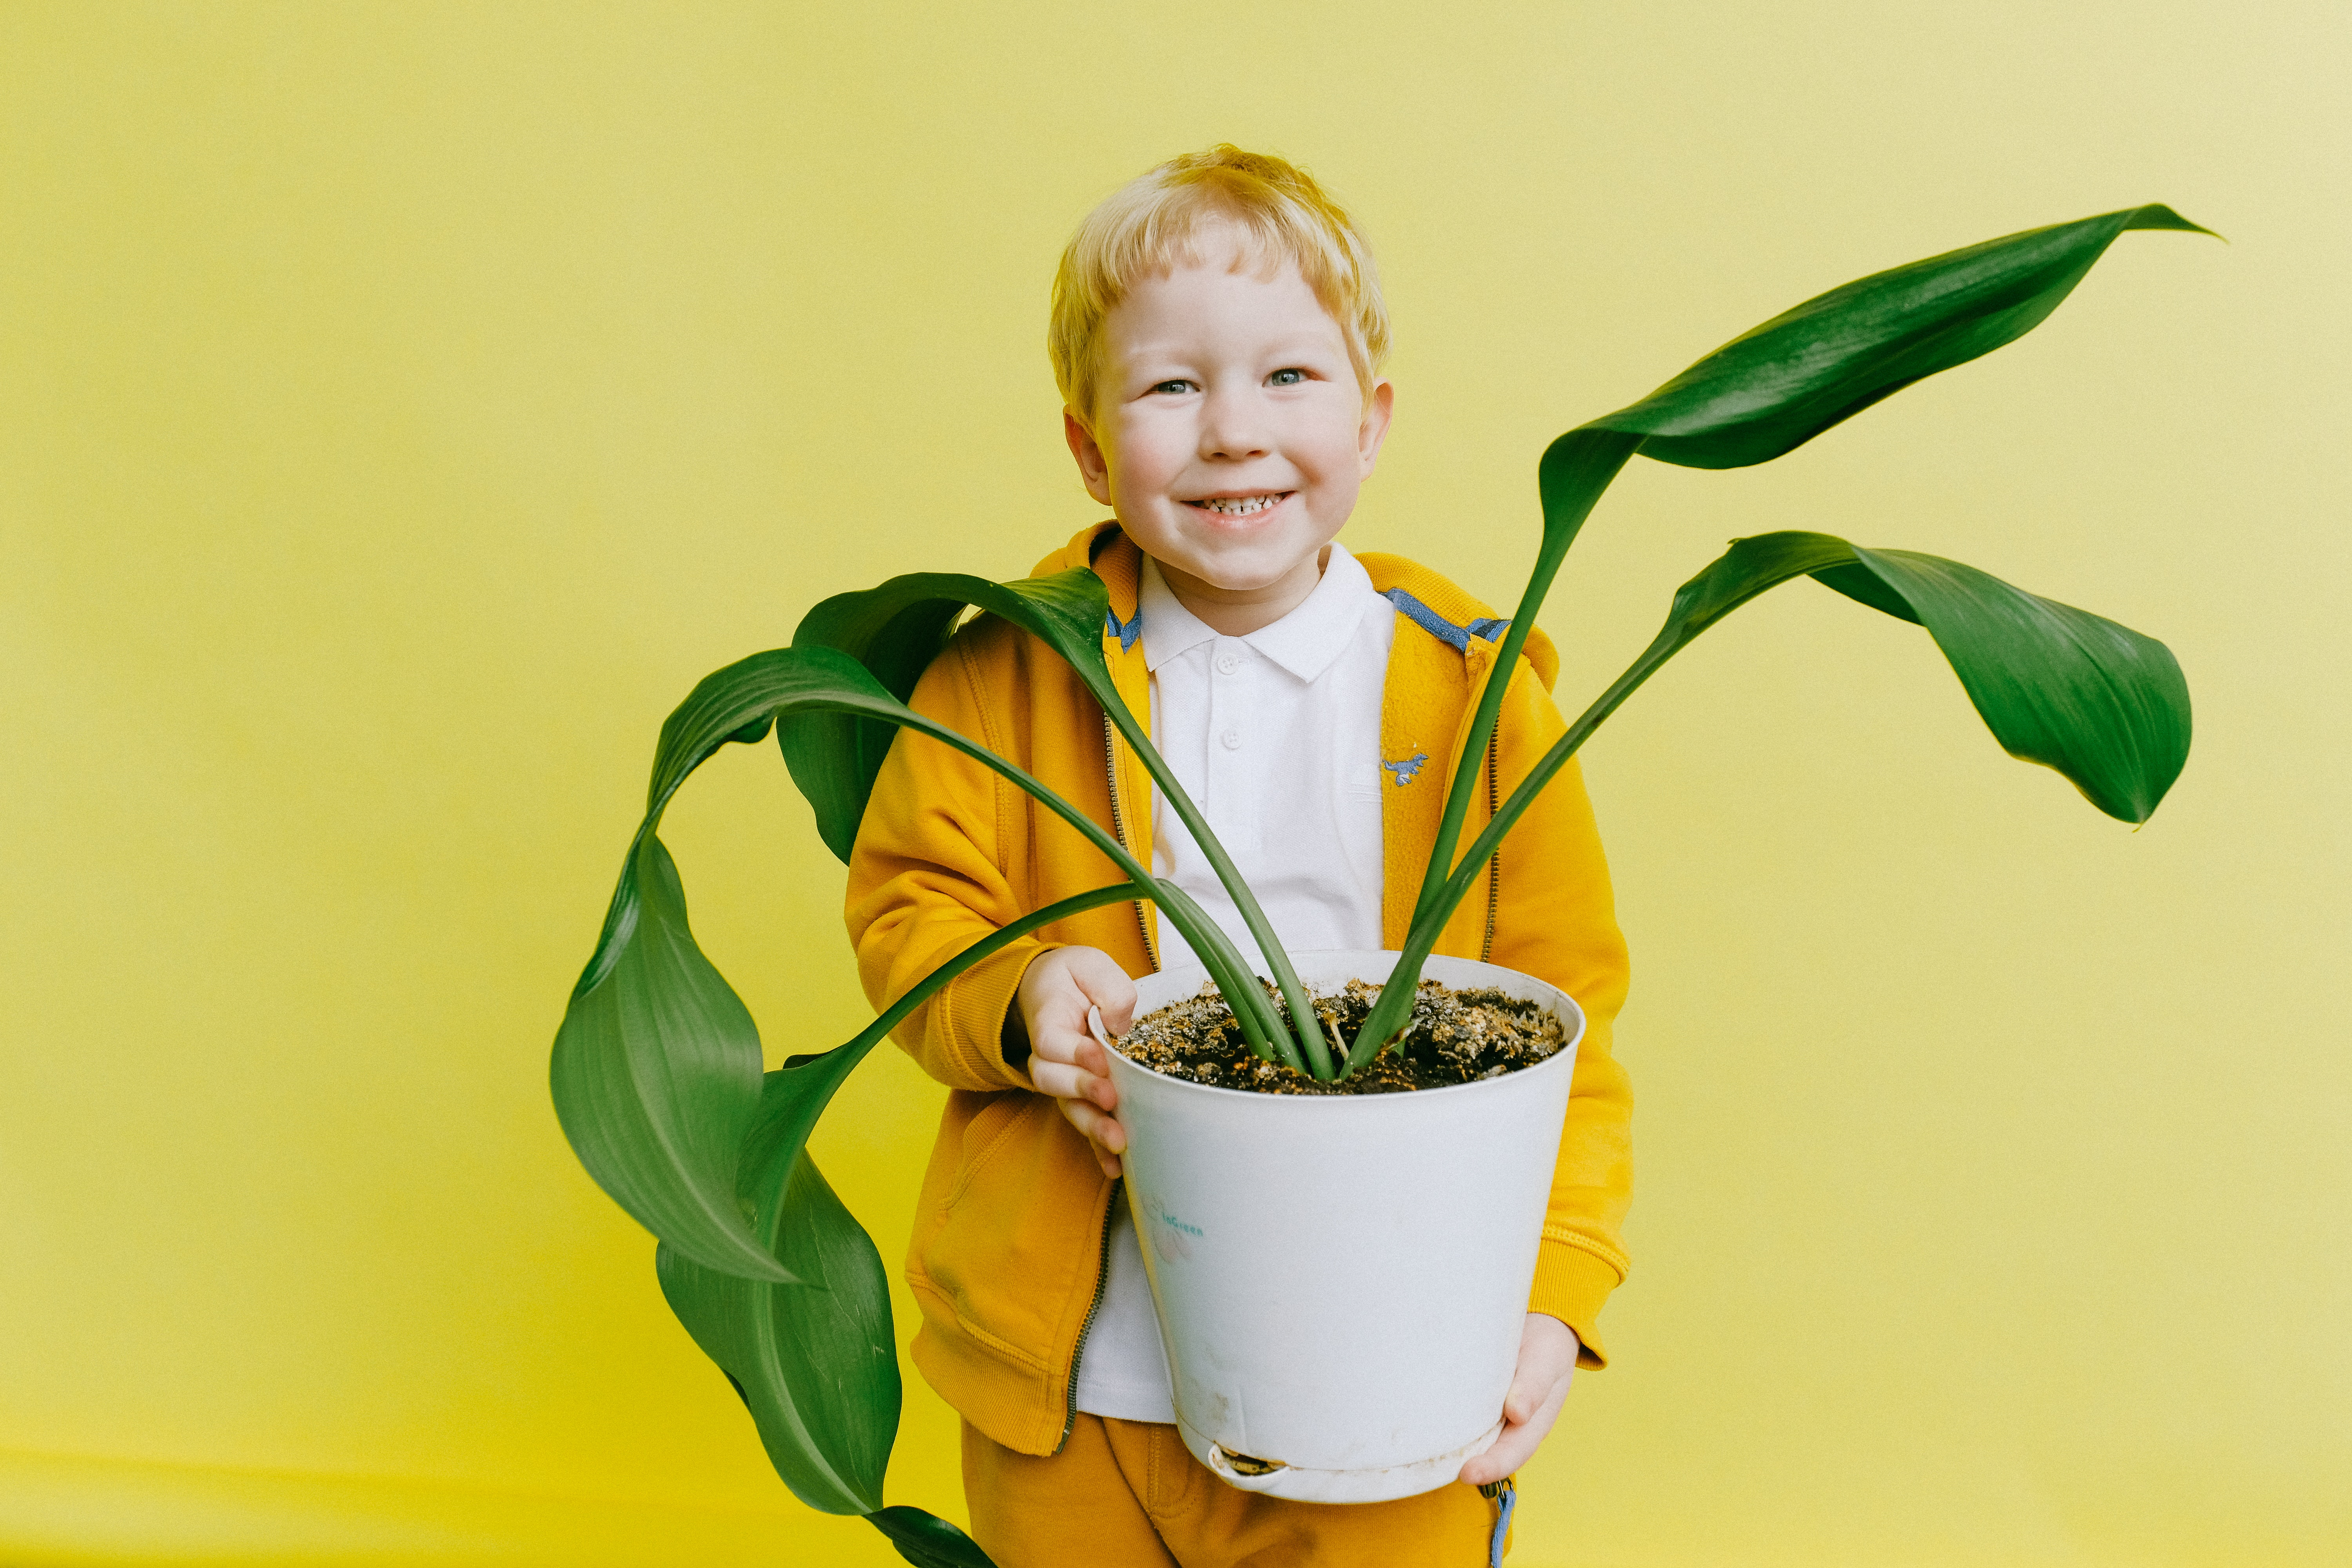 boy-in-yellow-jacket-and-white-shirt-holding-green-plant-in-3771643